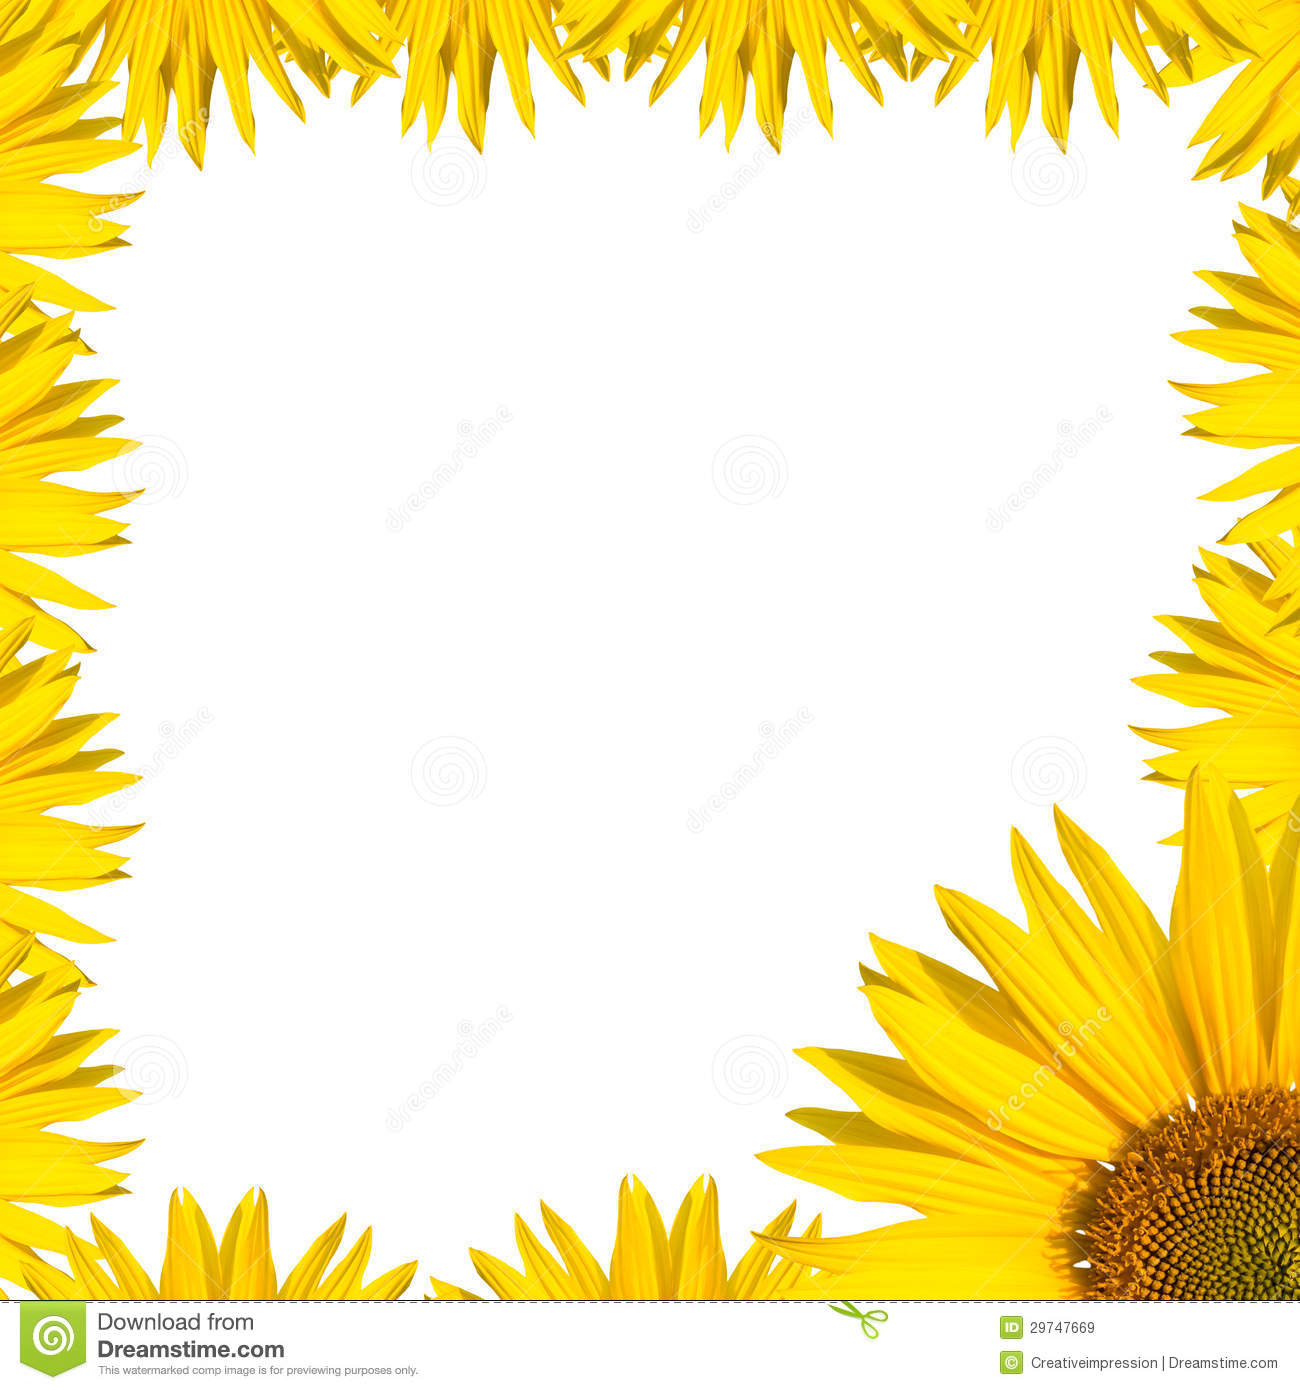 clip art borders sunflowers - photo #43